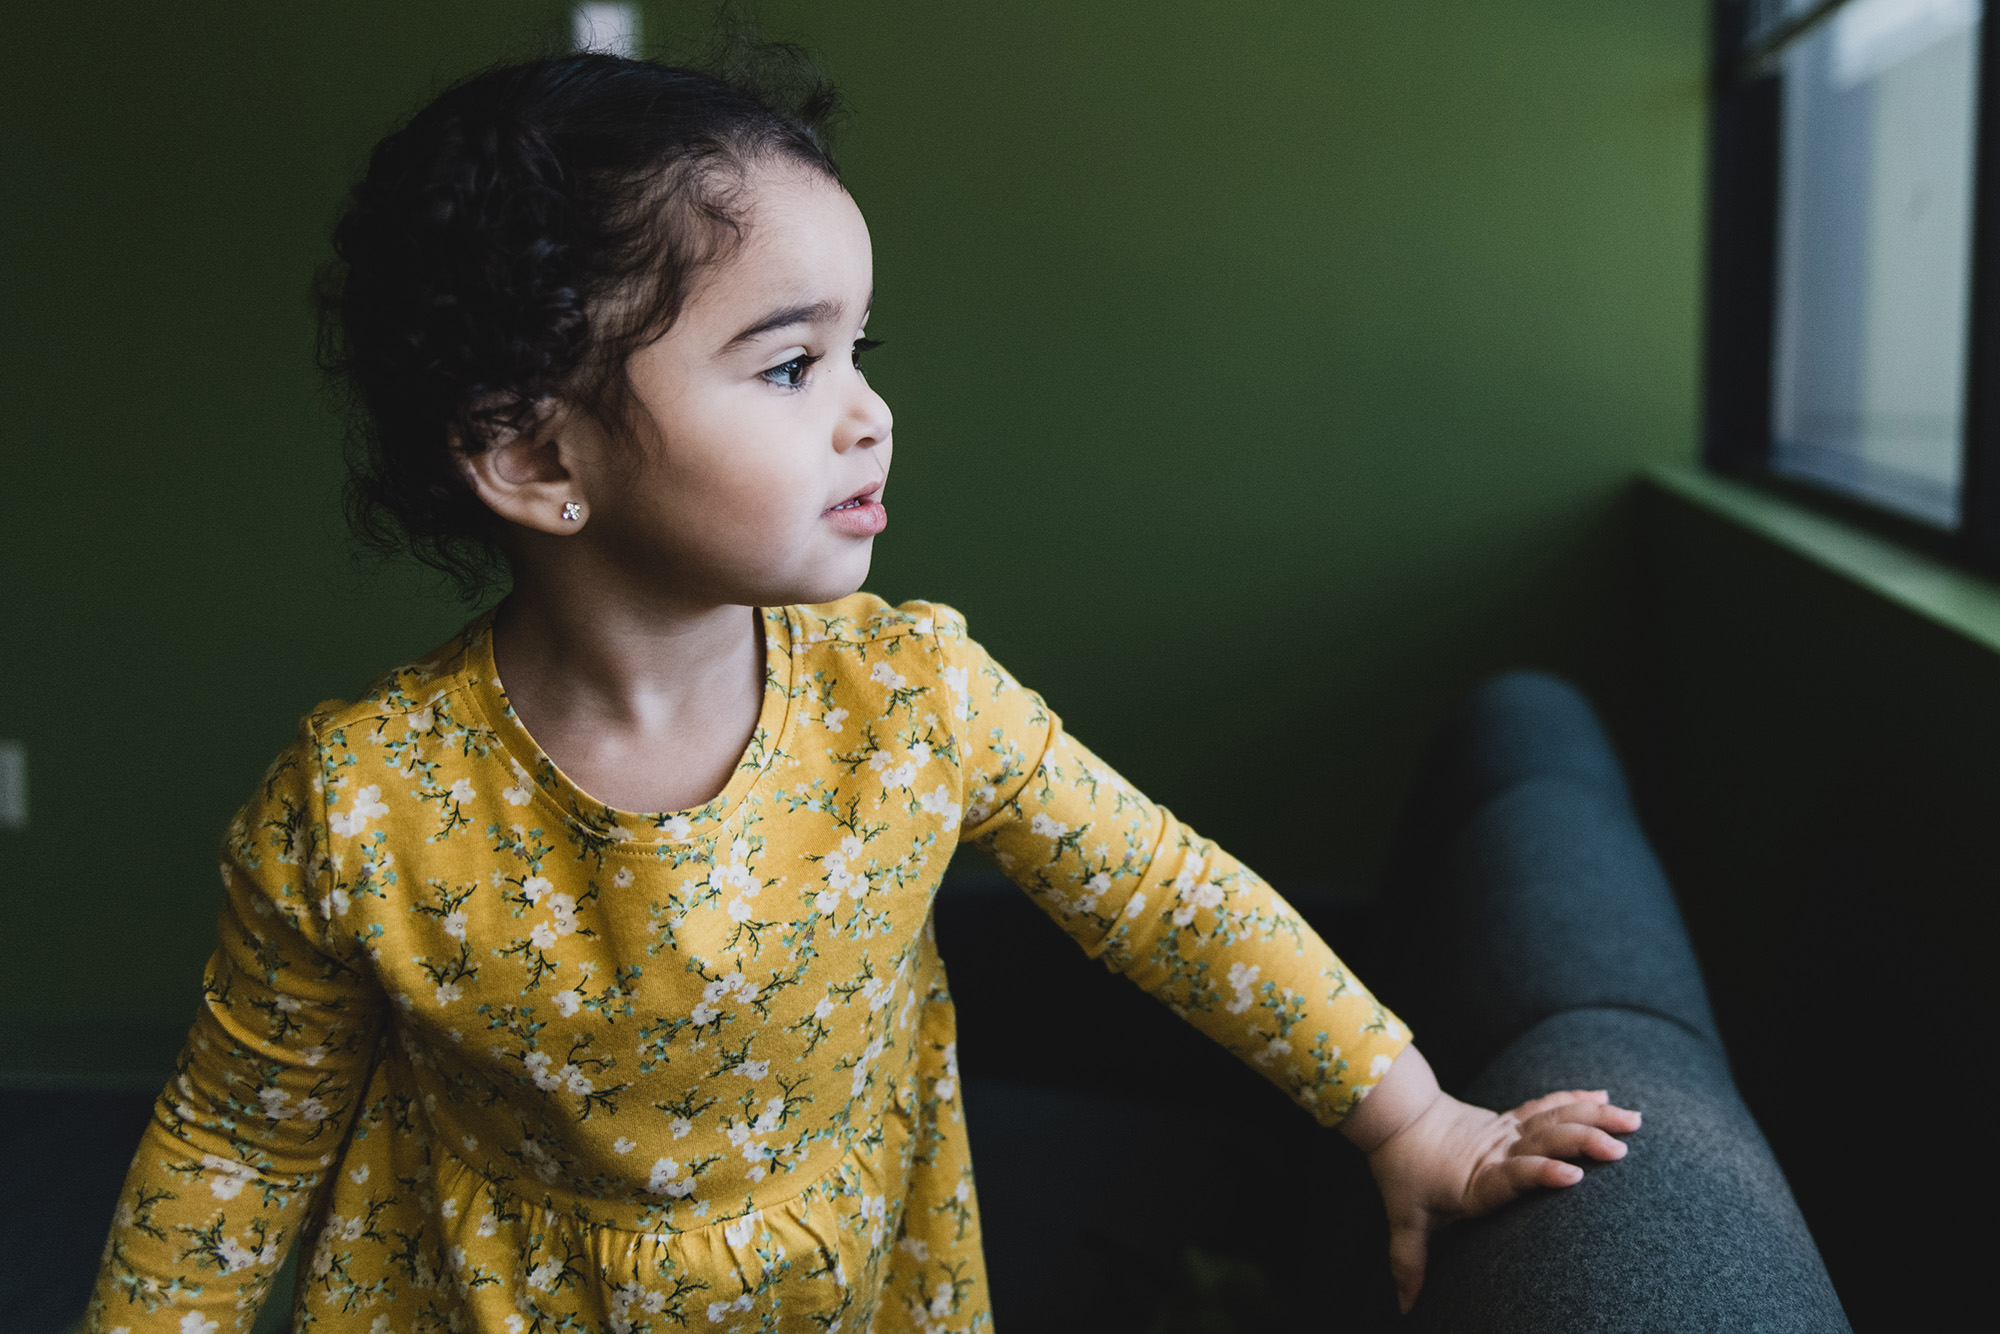 Urology patient Natalia looks out the window while wearing a yellow dress